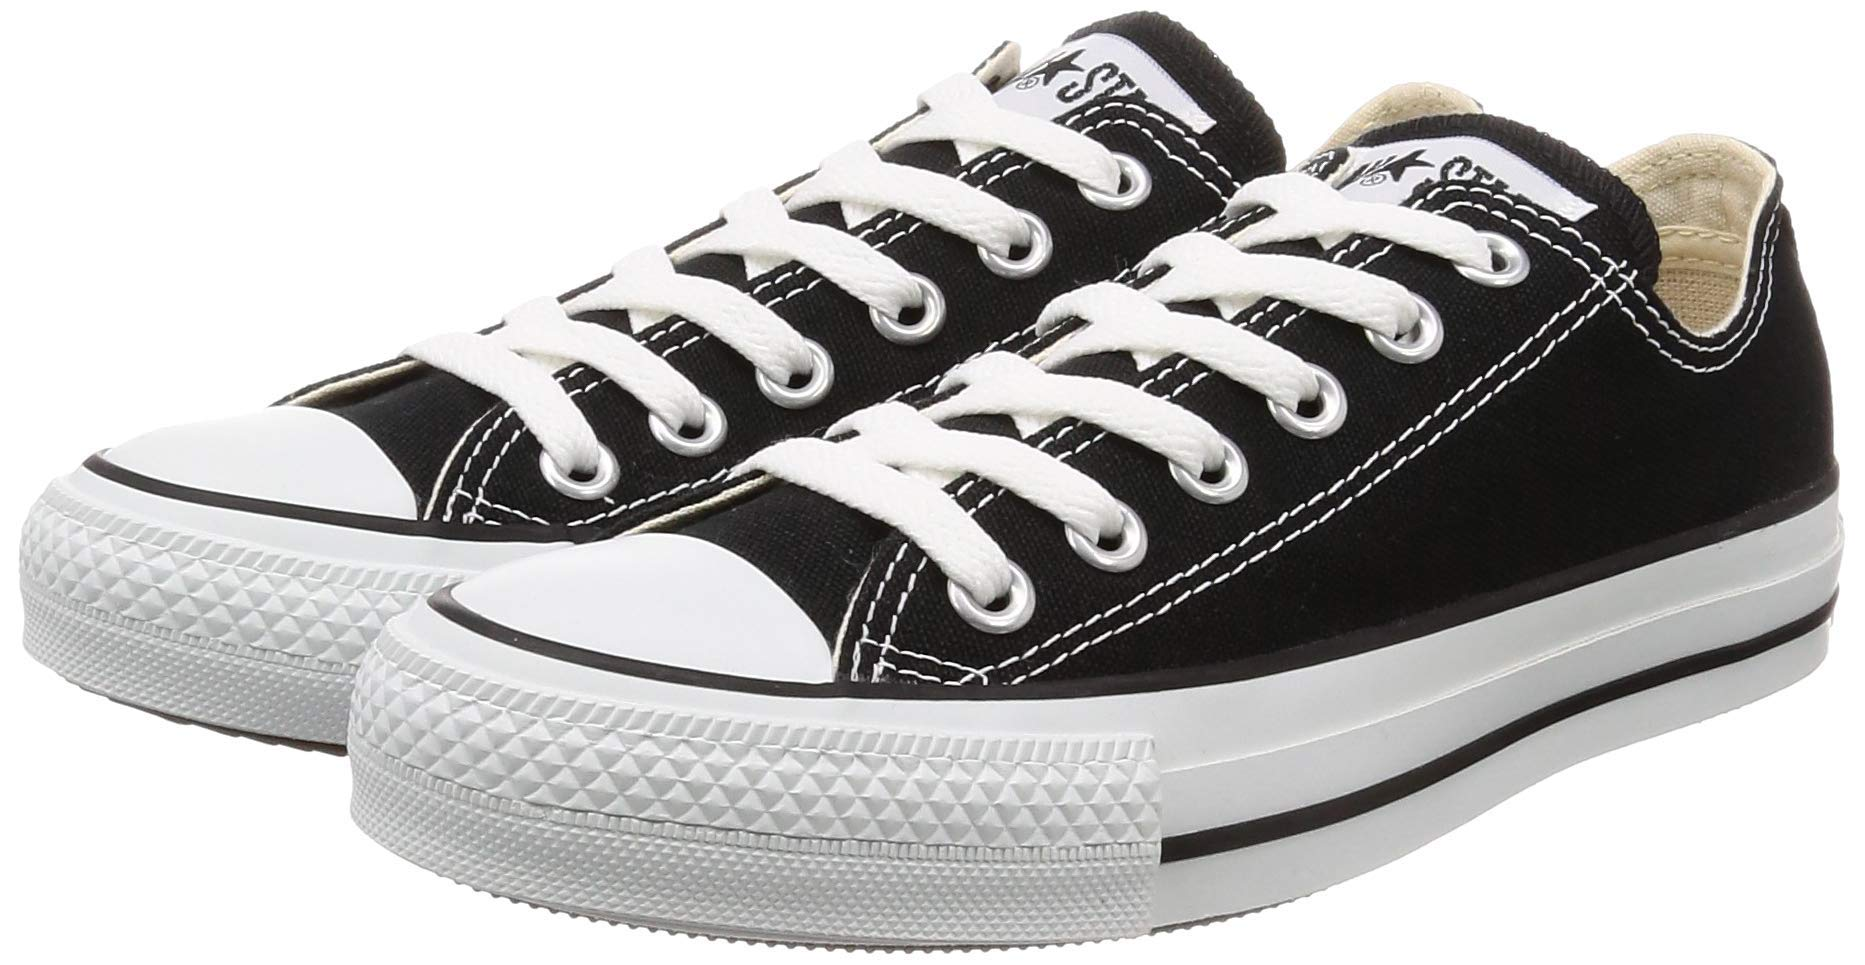 2converse chuck taylor all star sneakers unisex adulto